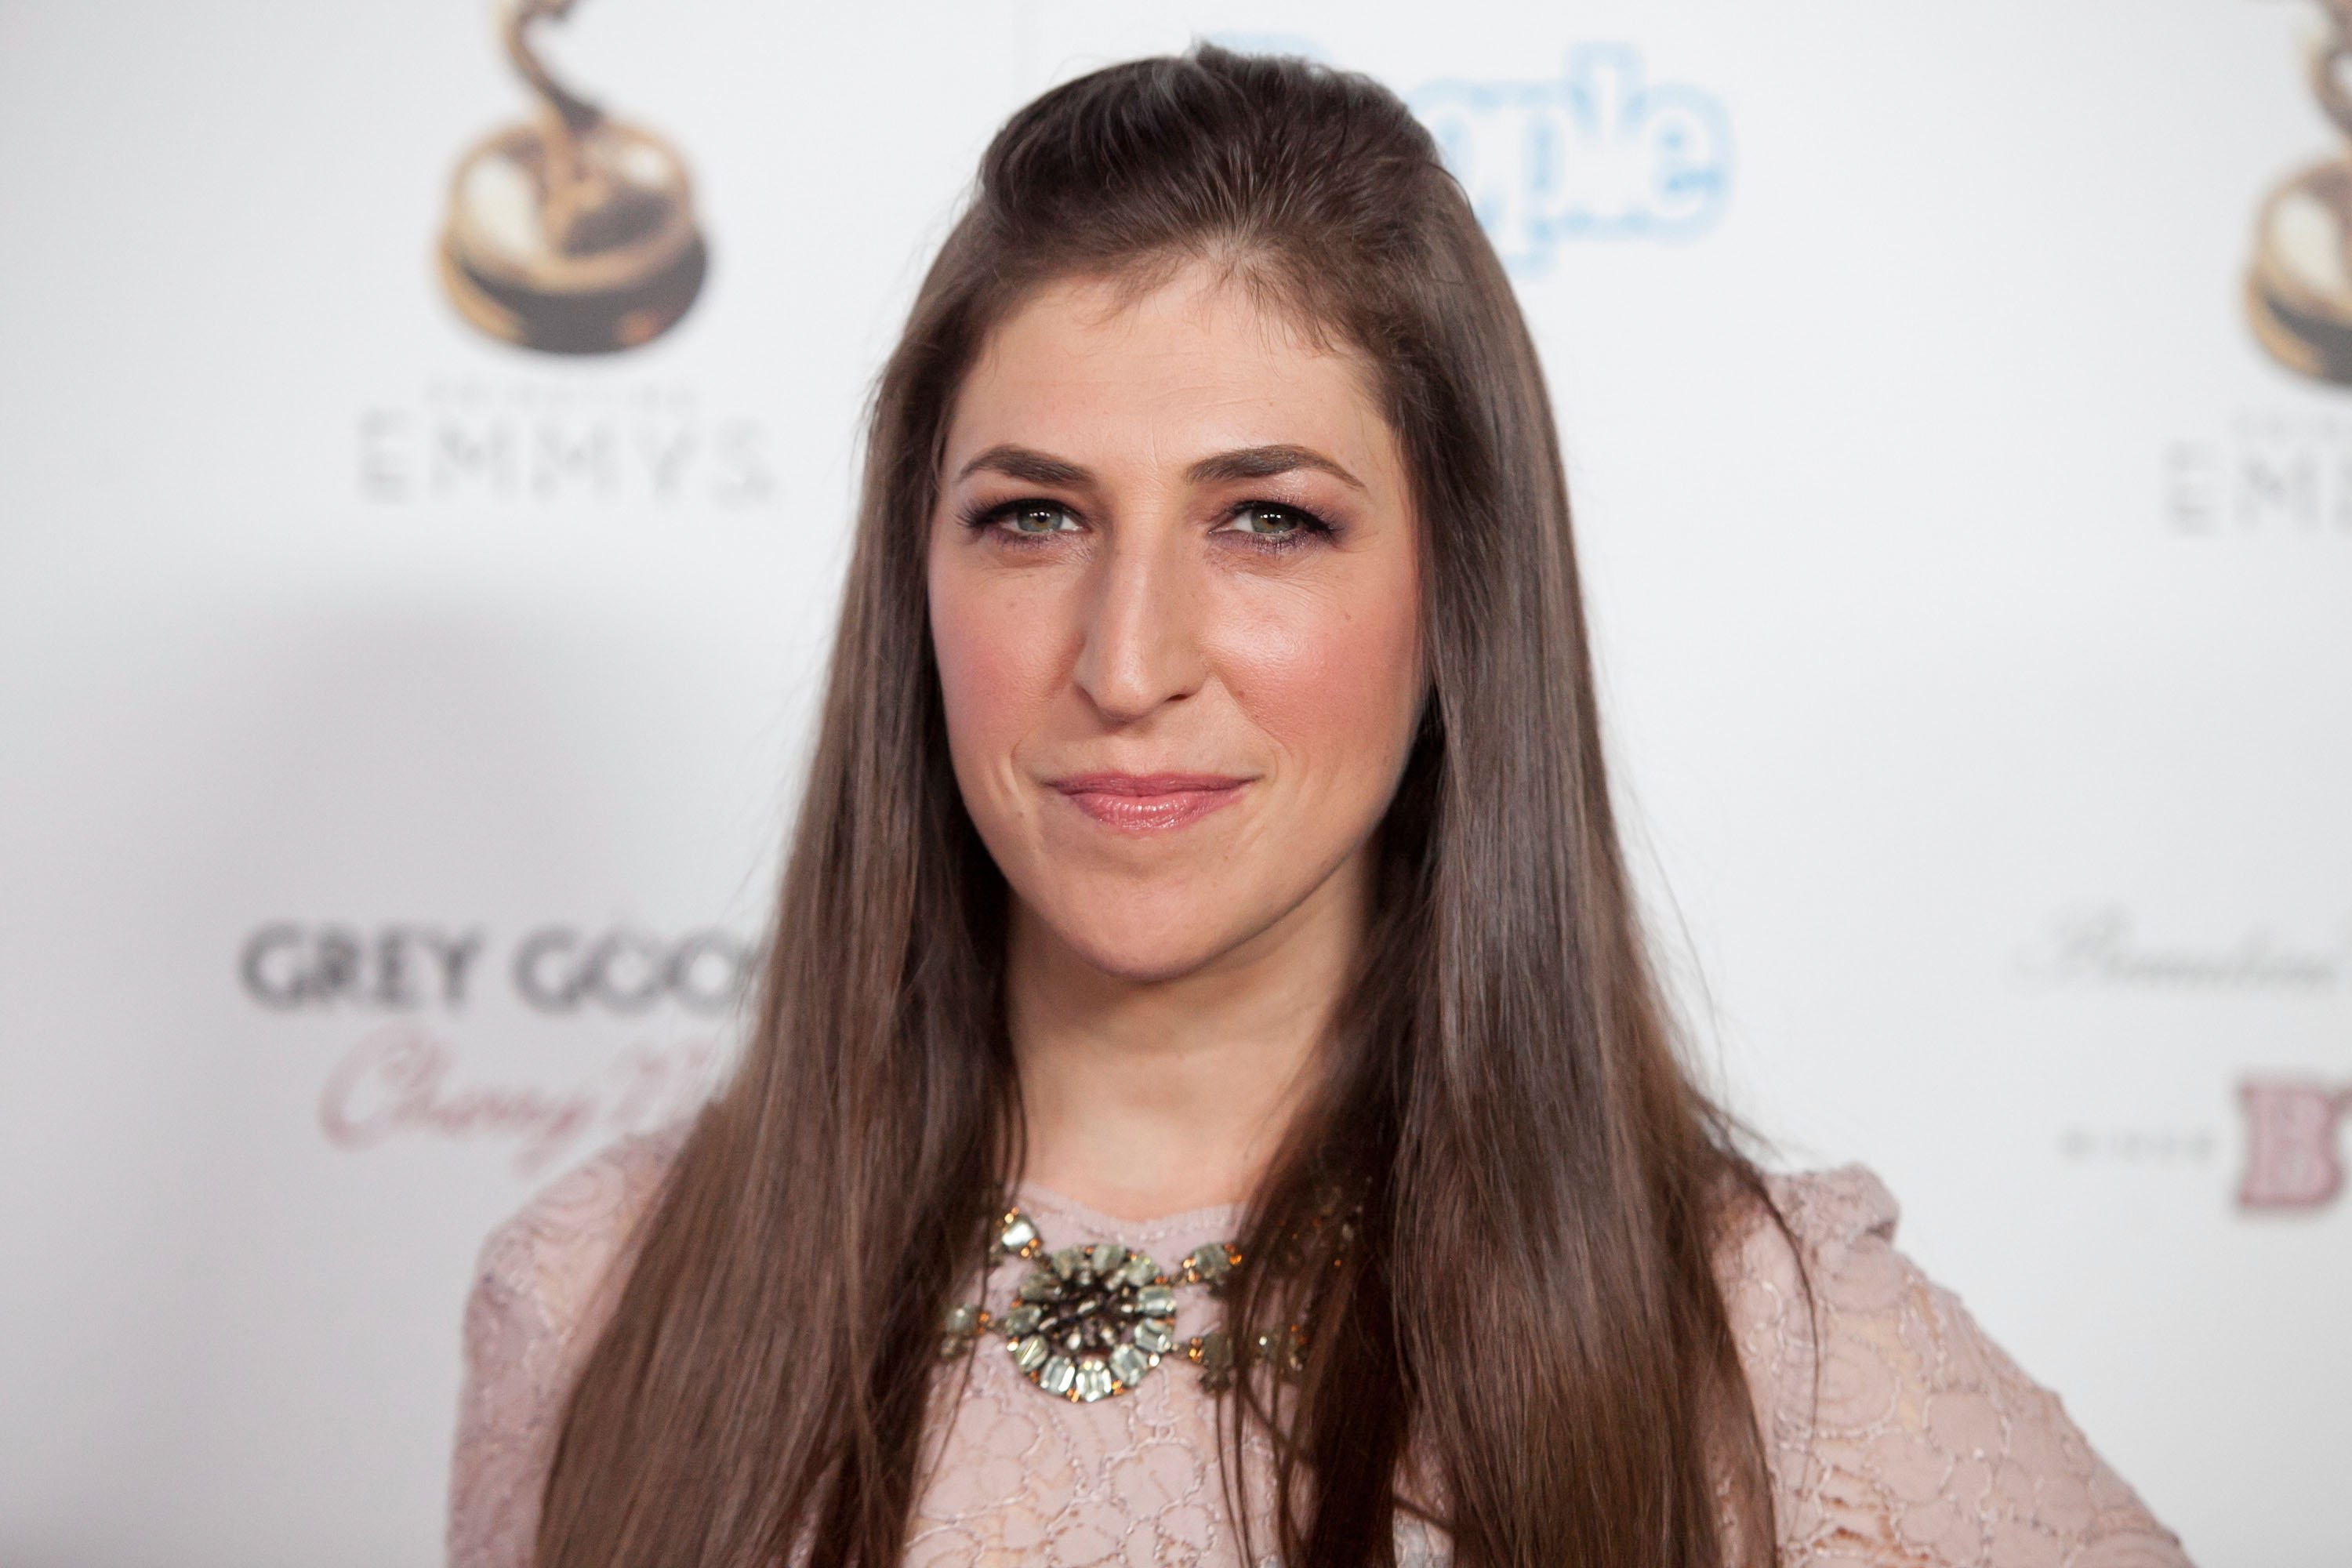 Mayim Bialik attends the 64th Primetime Emmy Awards Reception on September 21, 2012, in West Hollywood, California. | Source: Getty Images.